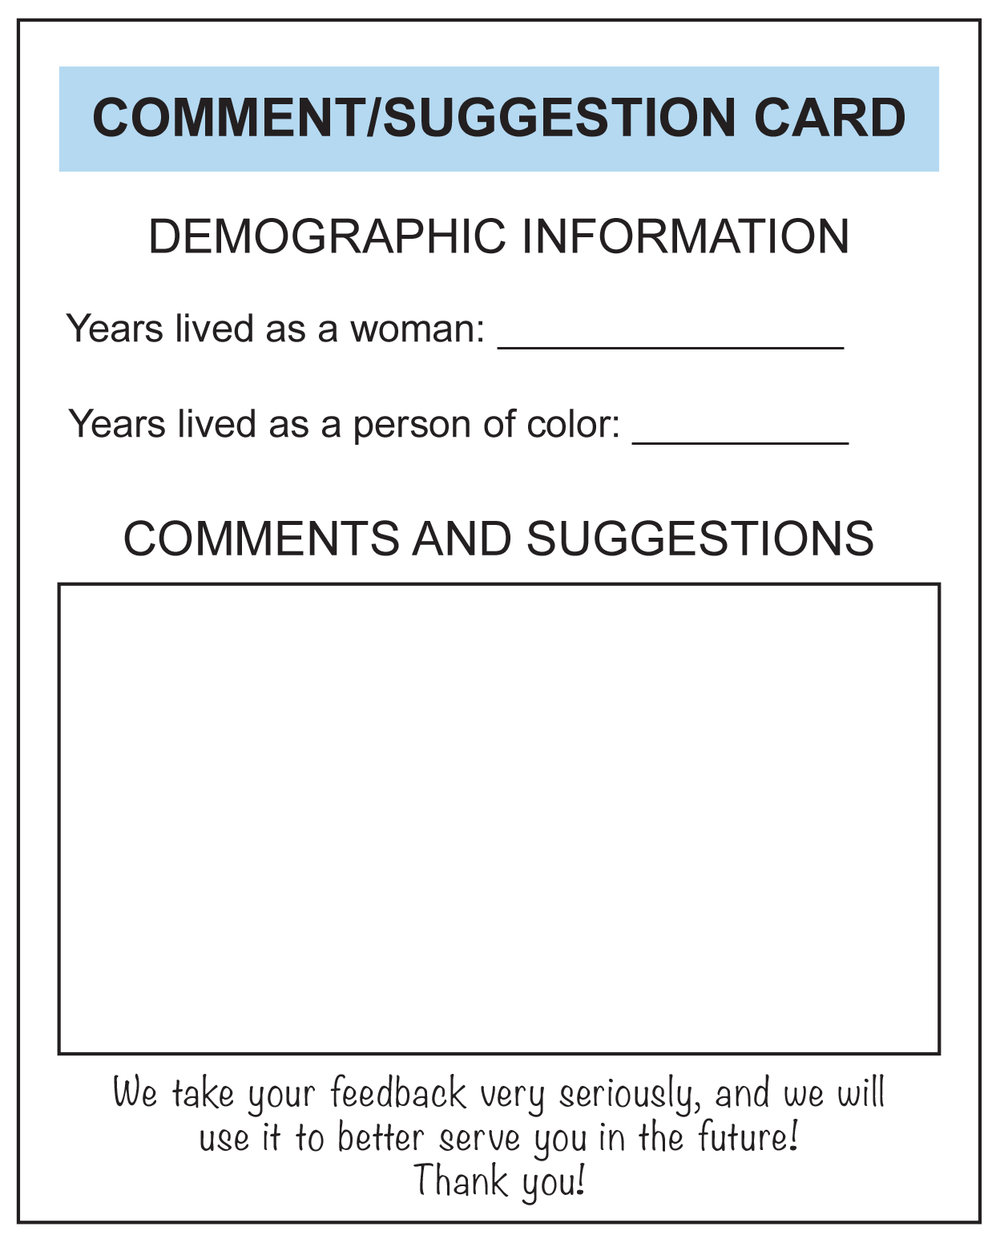 Comment card_page.jpg